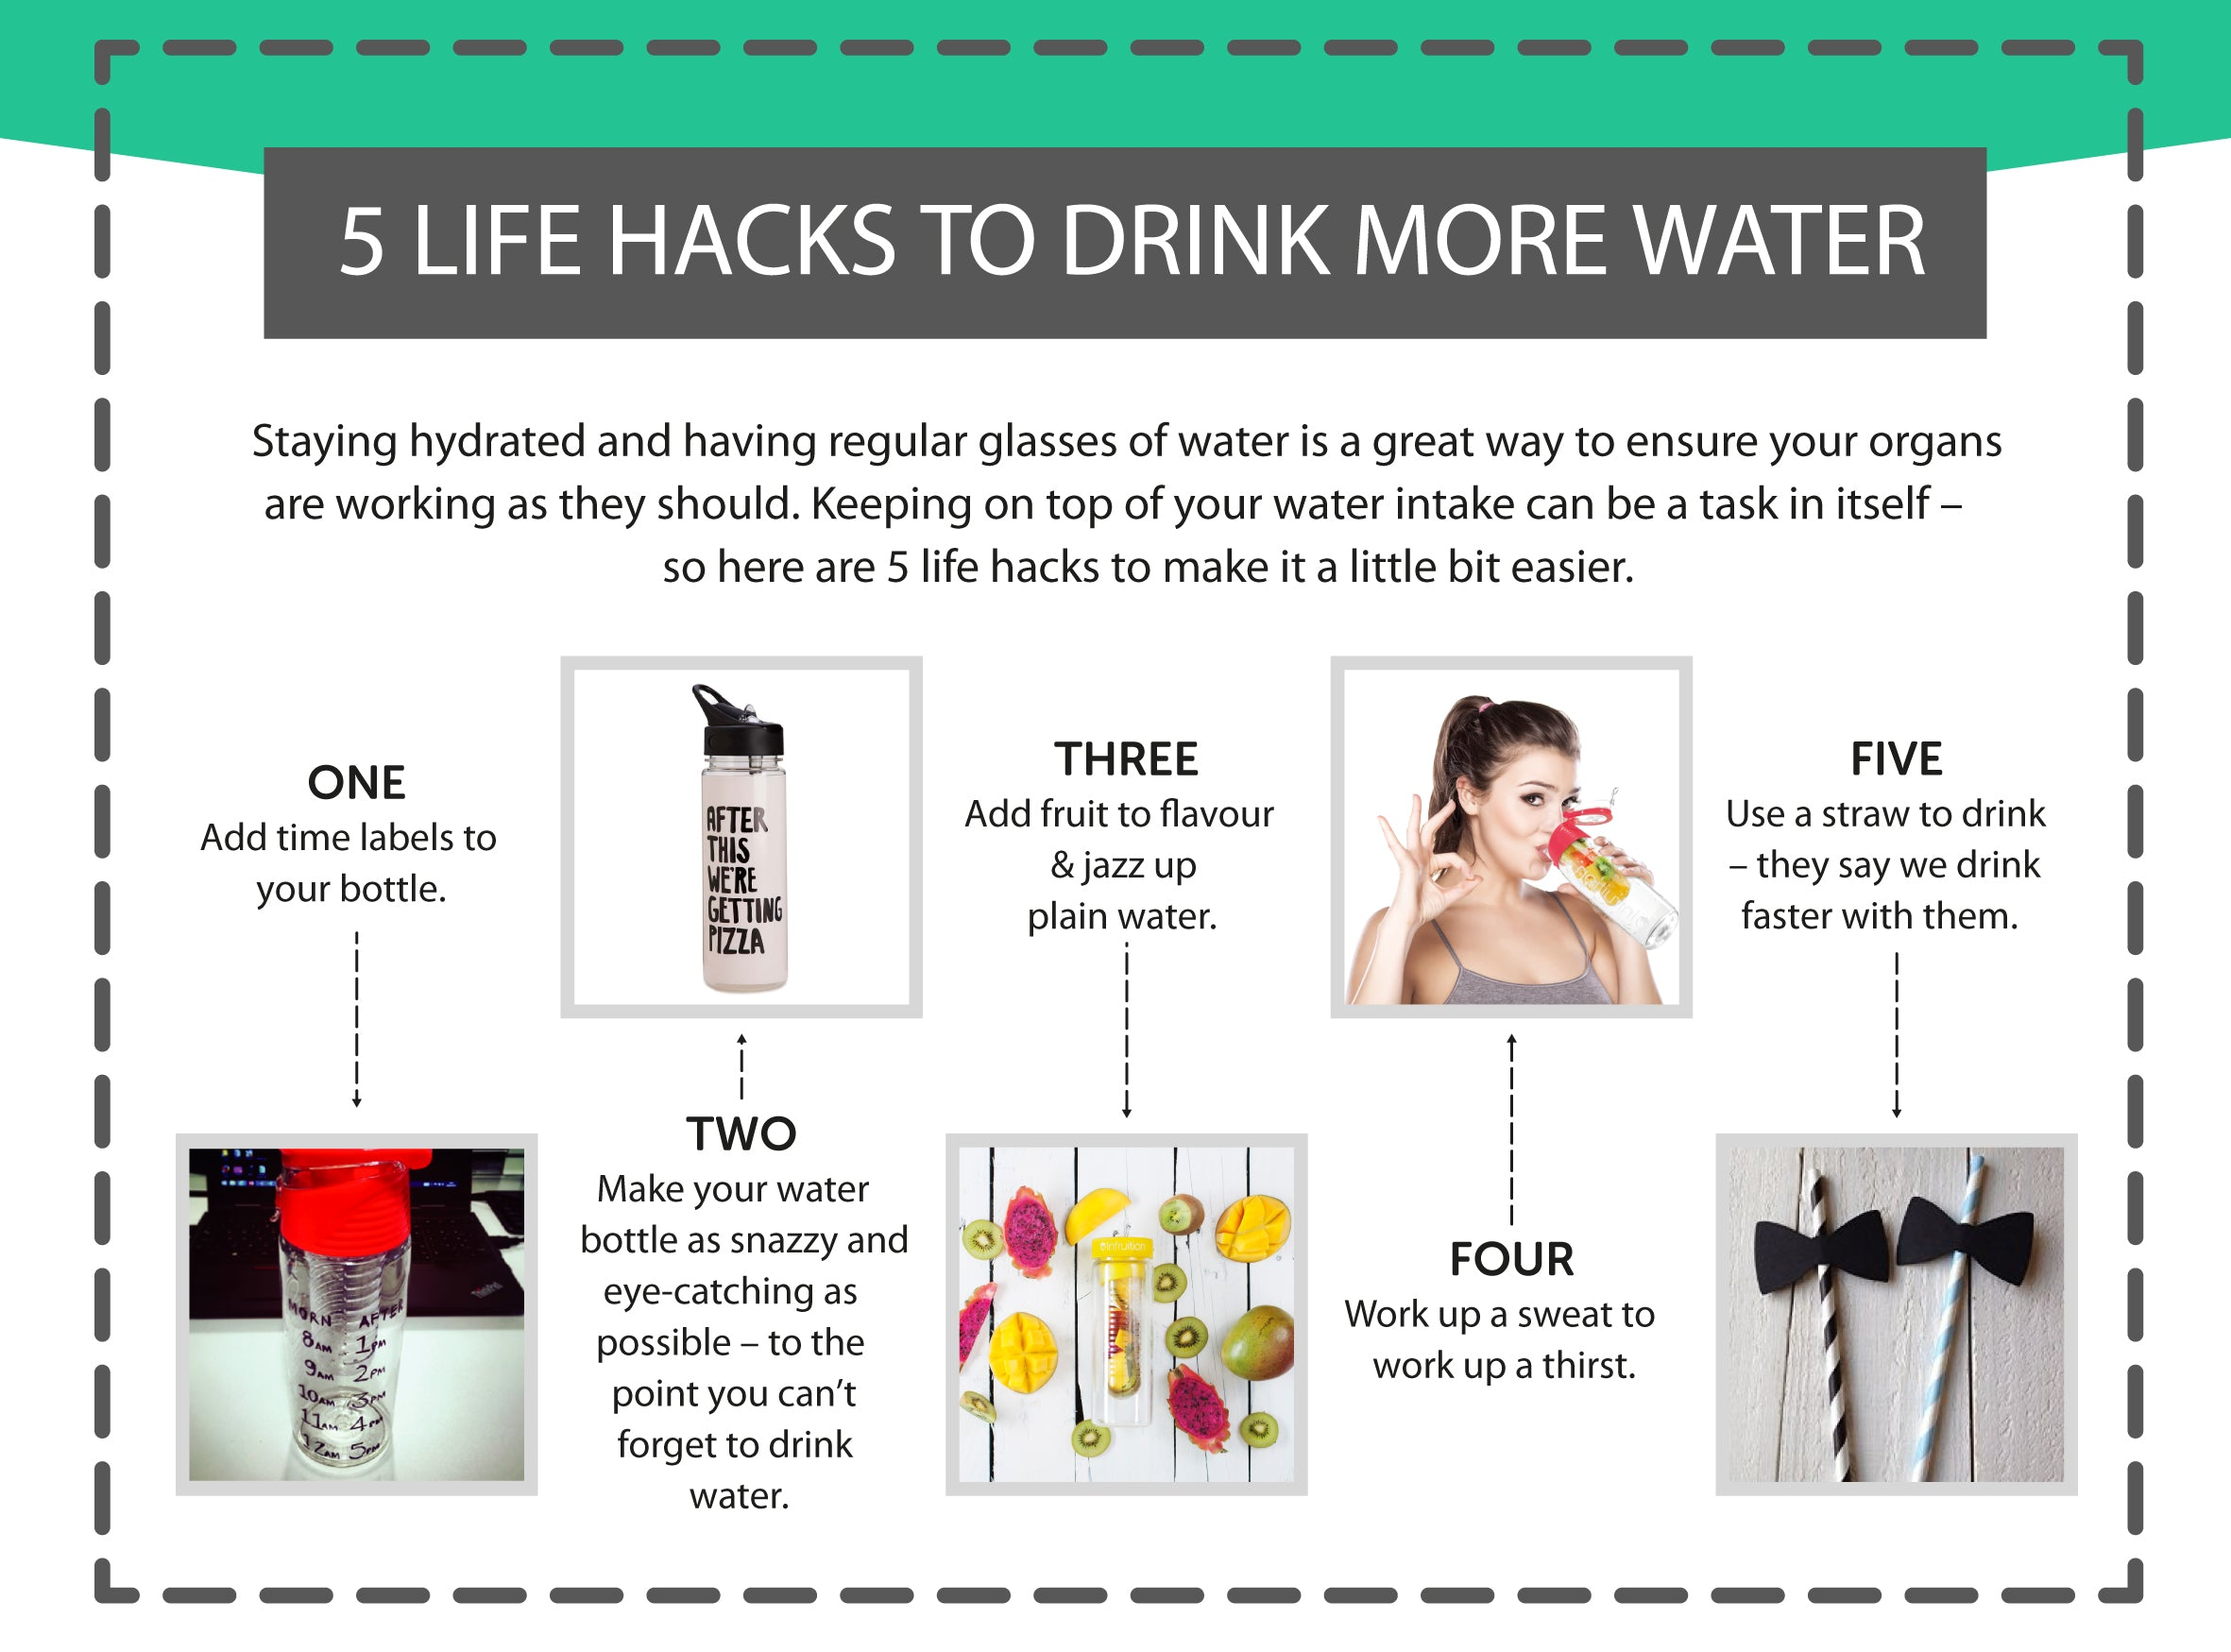 5 Life Hacks to Drink More Water